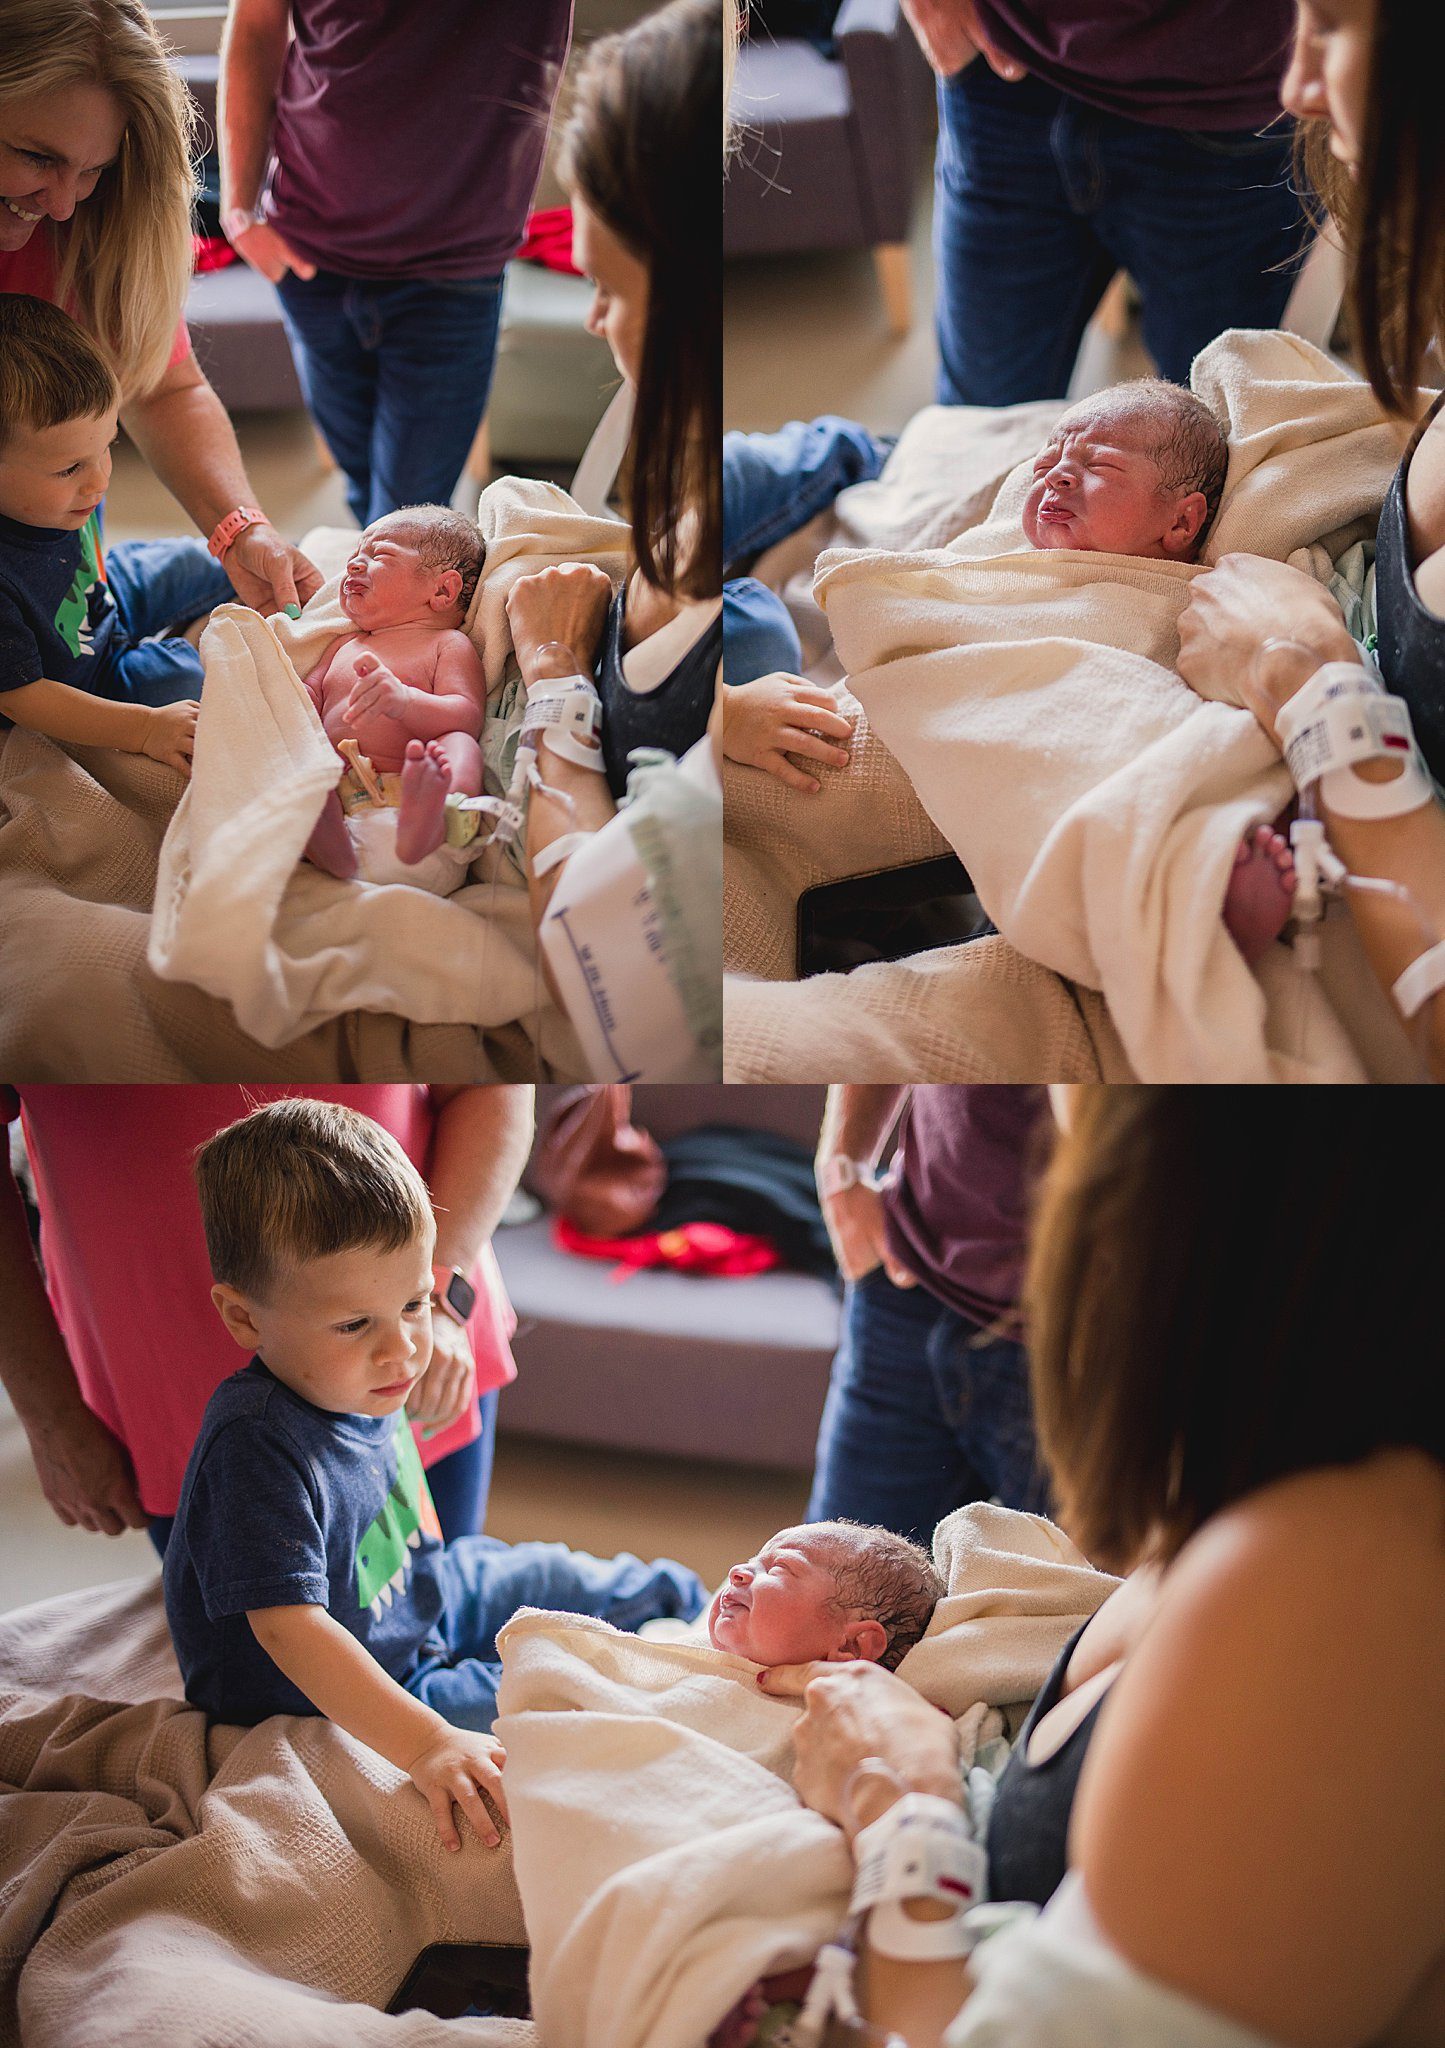 2019-03-16-hospital-baby-birth-photo-osage-beach-missouri-lake-1.jpg